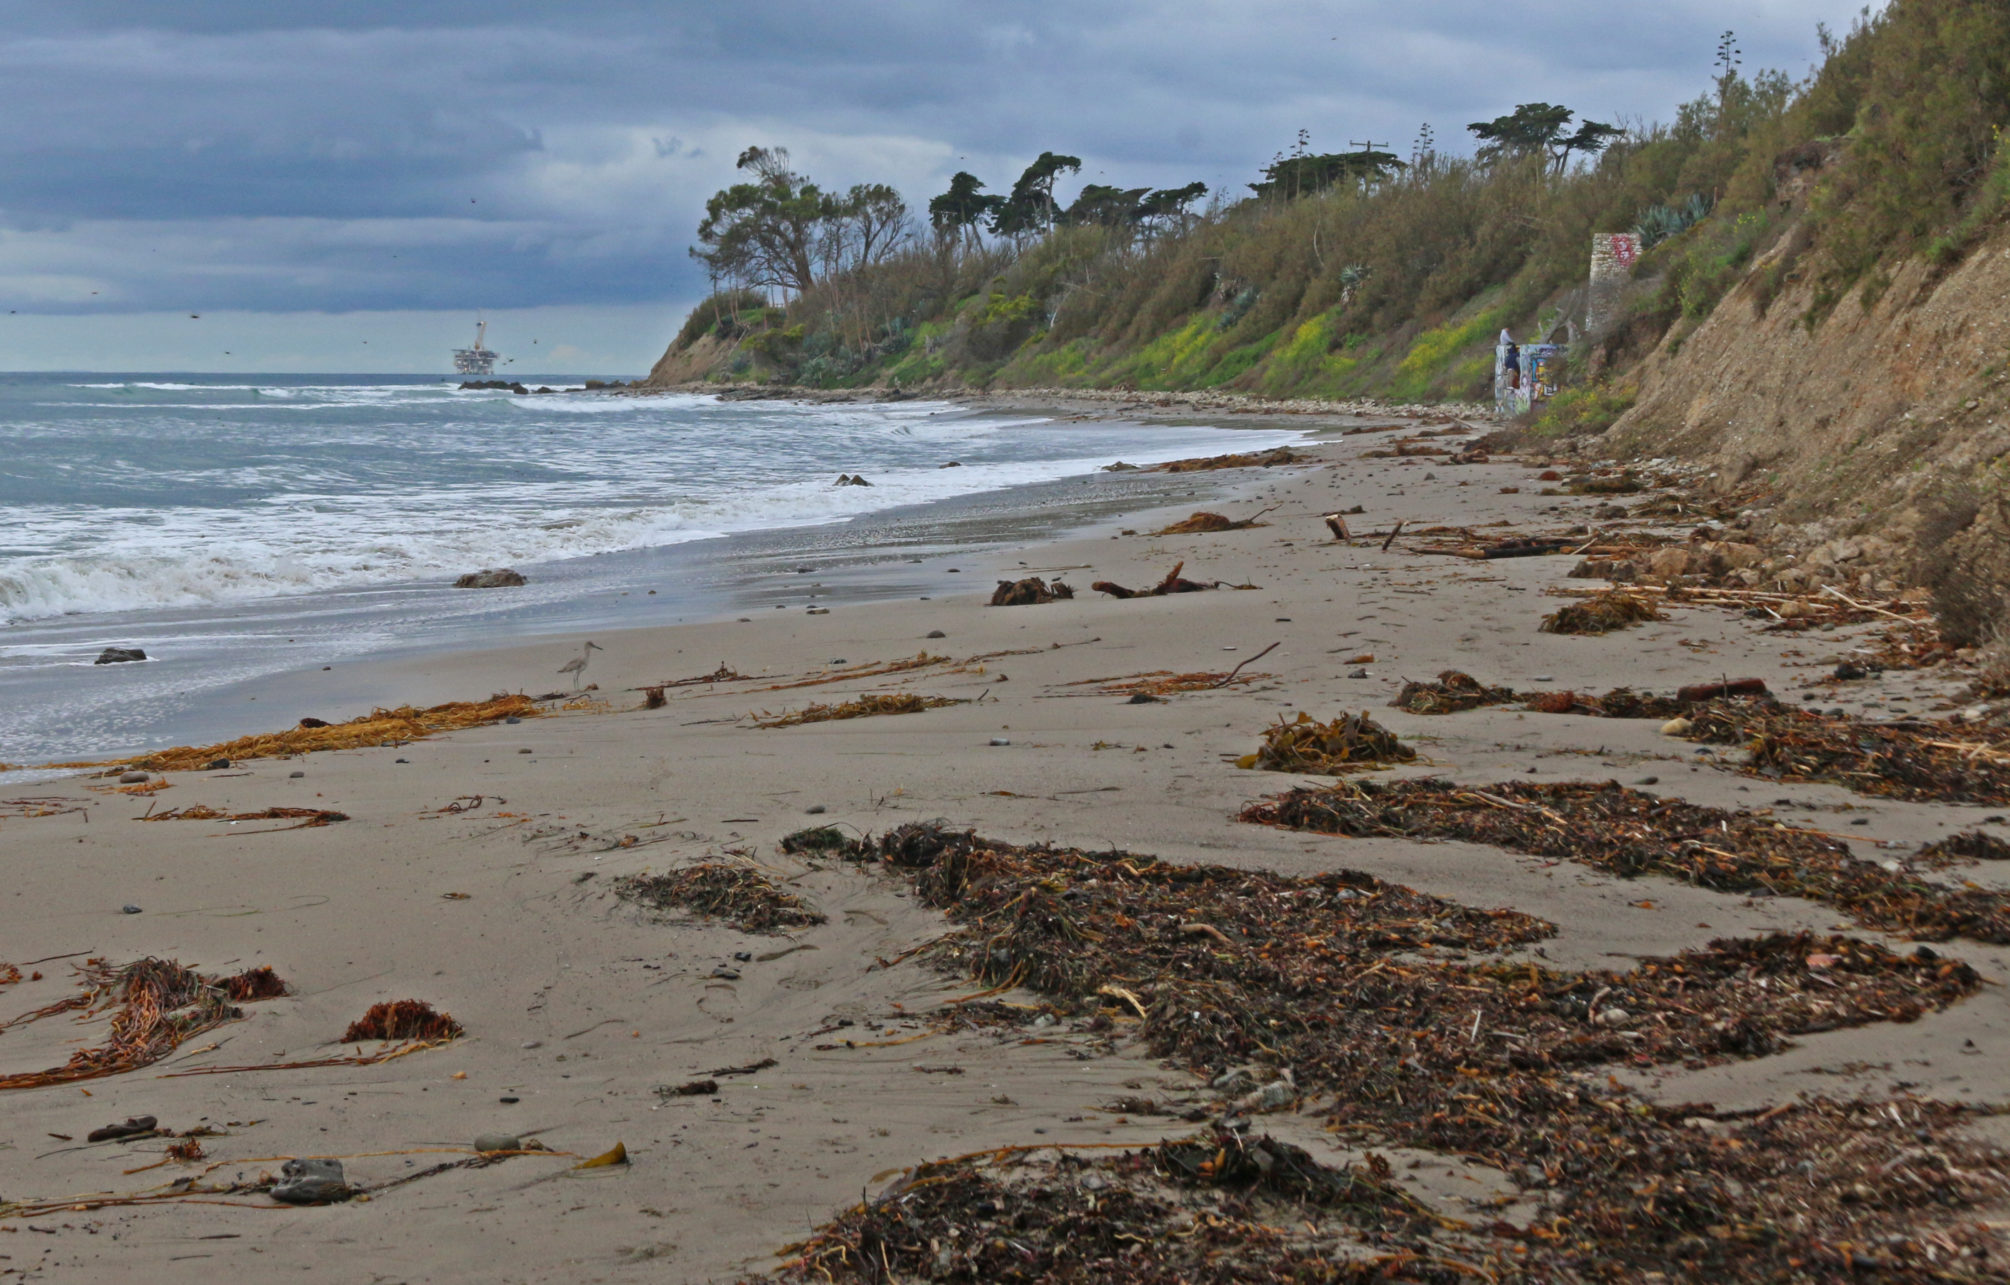 One of the beaches that comprises the Santa Barbara Coastal LTER Site, where beach wrack is a key part of the ecosystem.